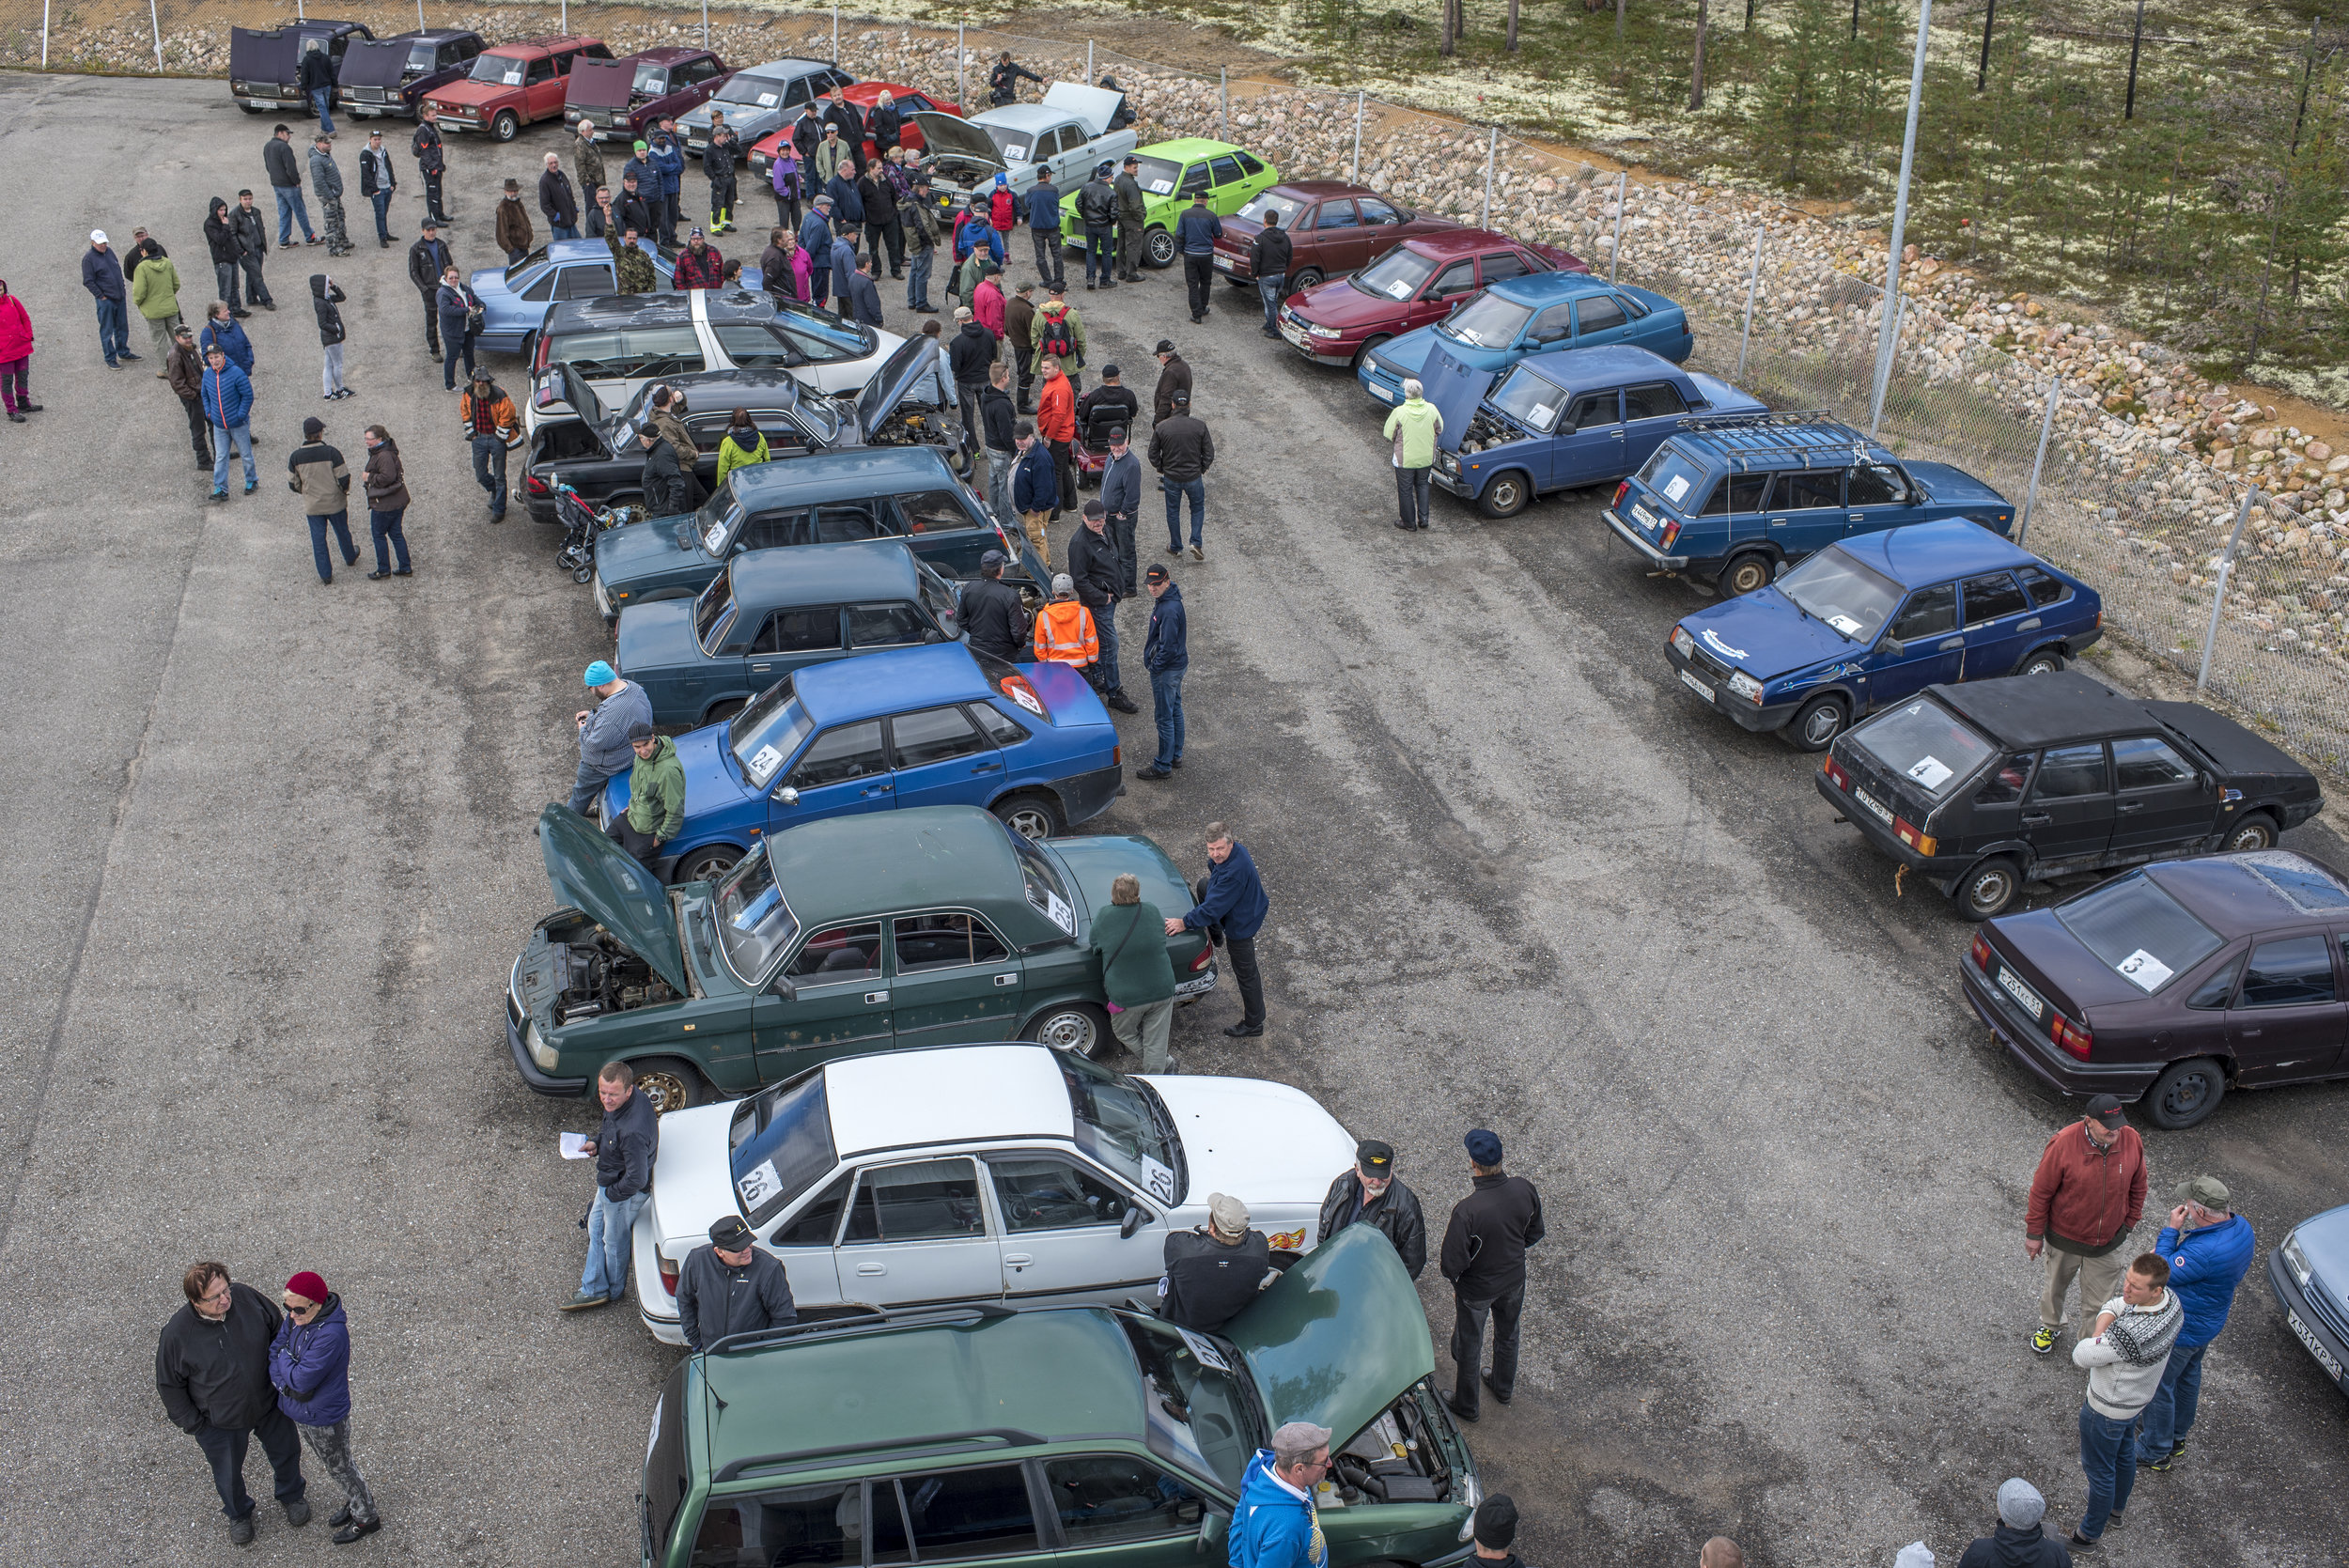 Some soviet car enthusiasts drove a thousand kilometers to buy almost unusable Volga's and Lada's at an auction in Raja-Jooseppi, Inari.  Lehtikuva 2016.